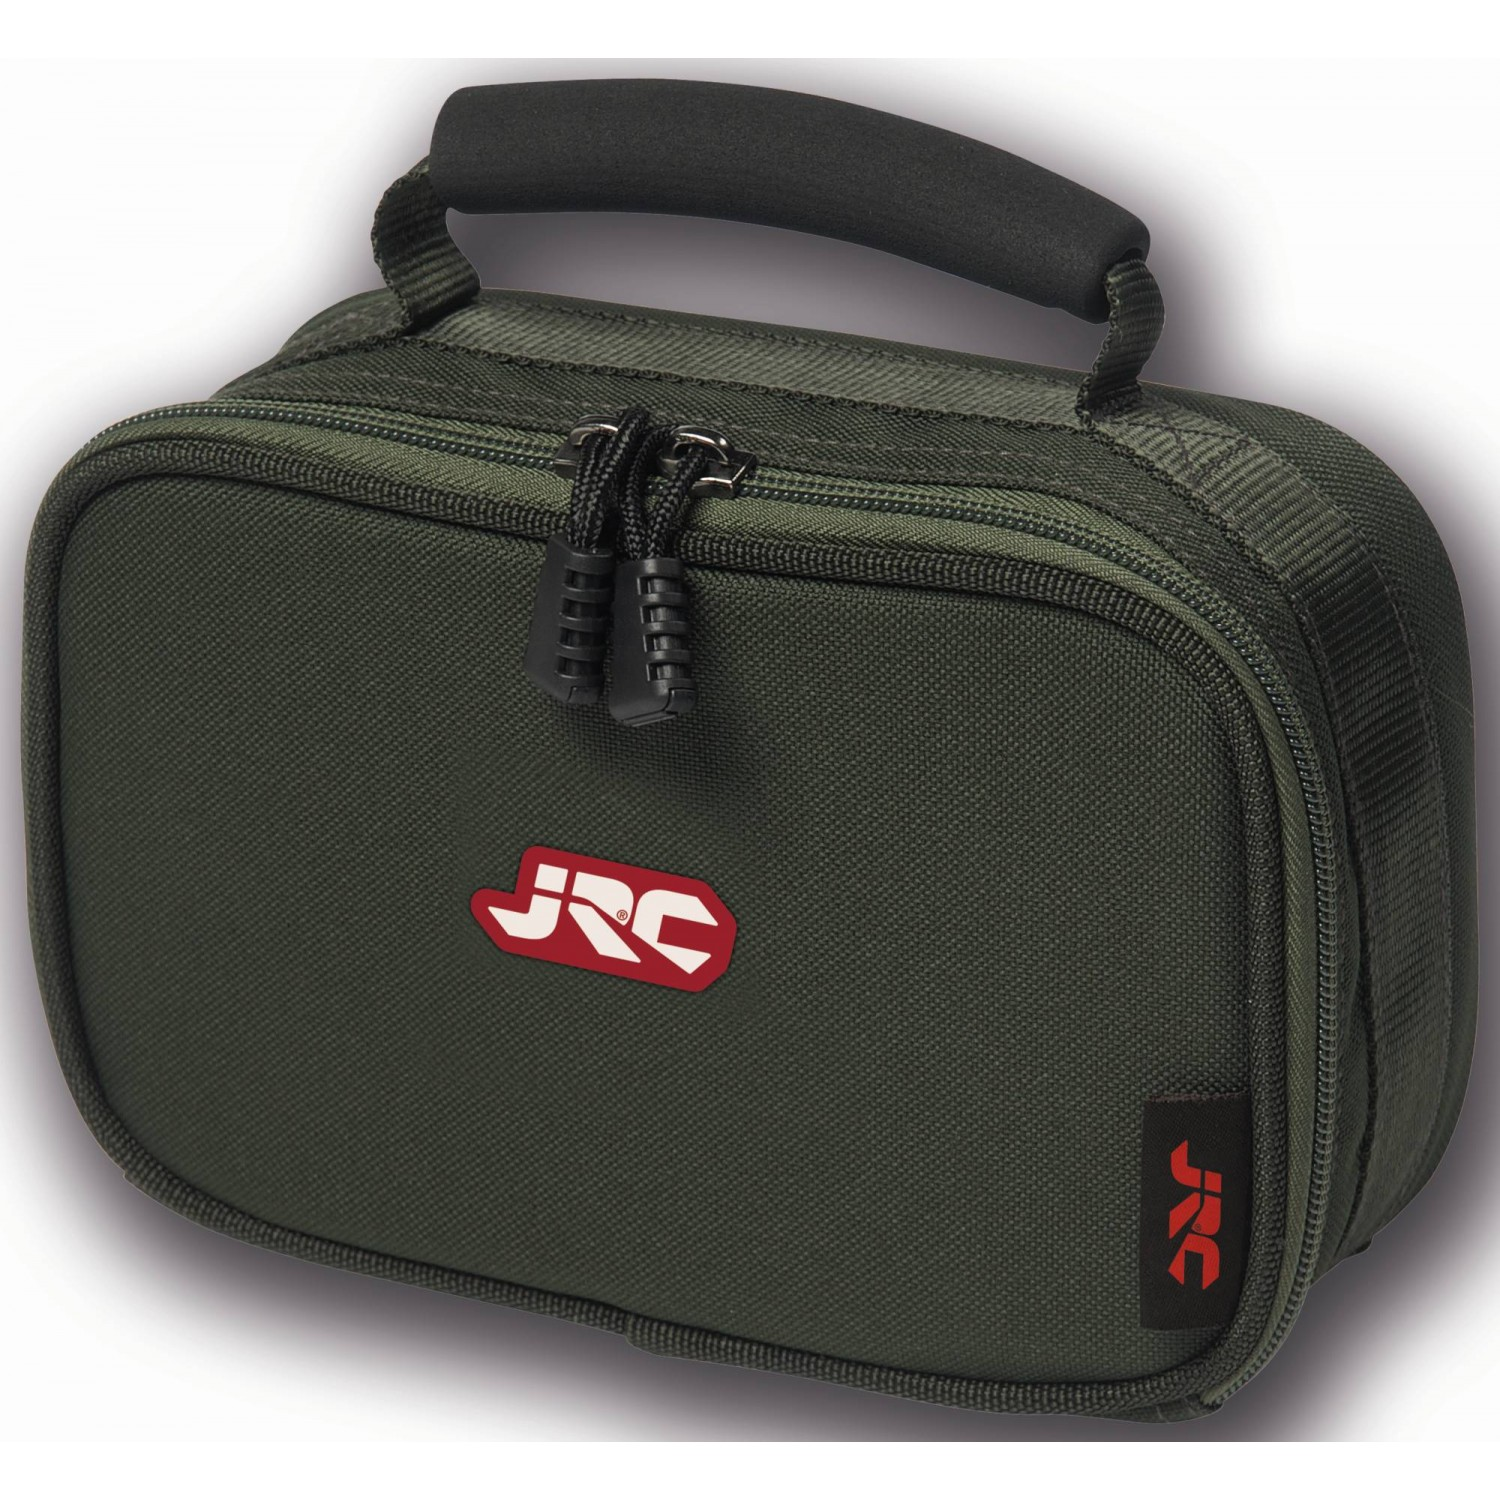 JRC Contact Lead Bag, 22 x 14 x 8.5cm